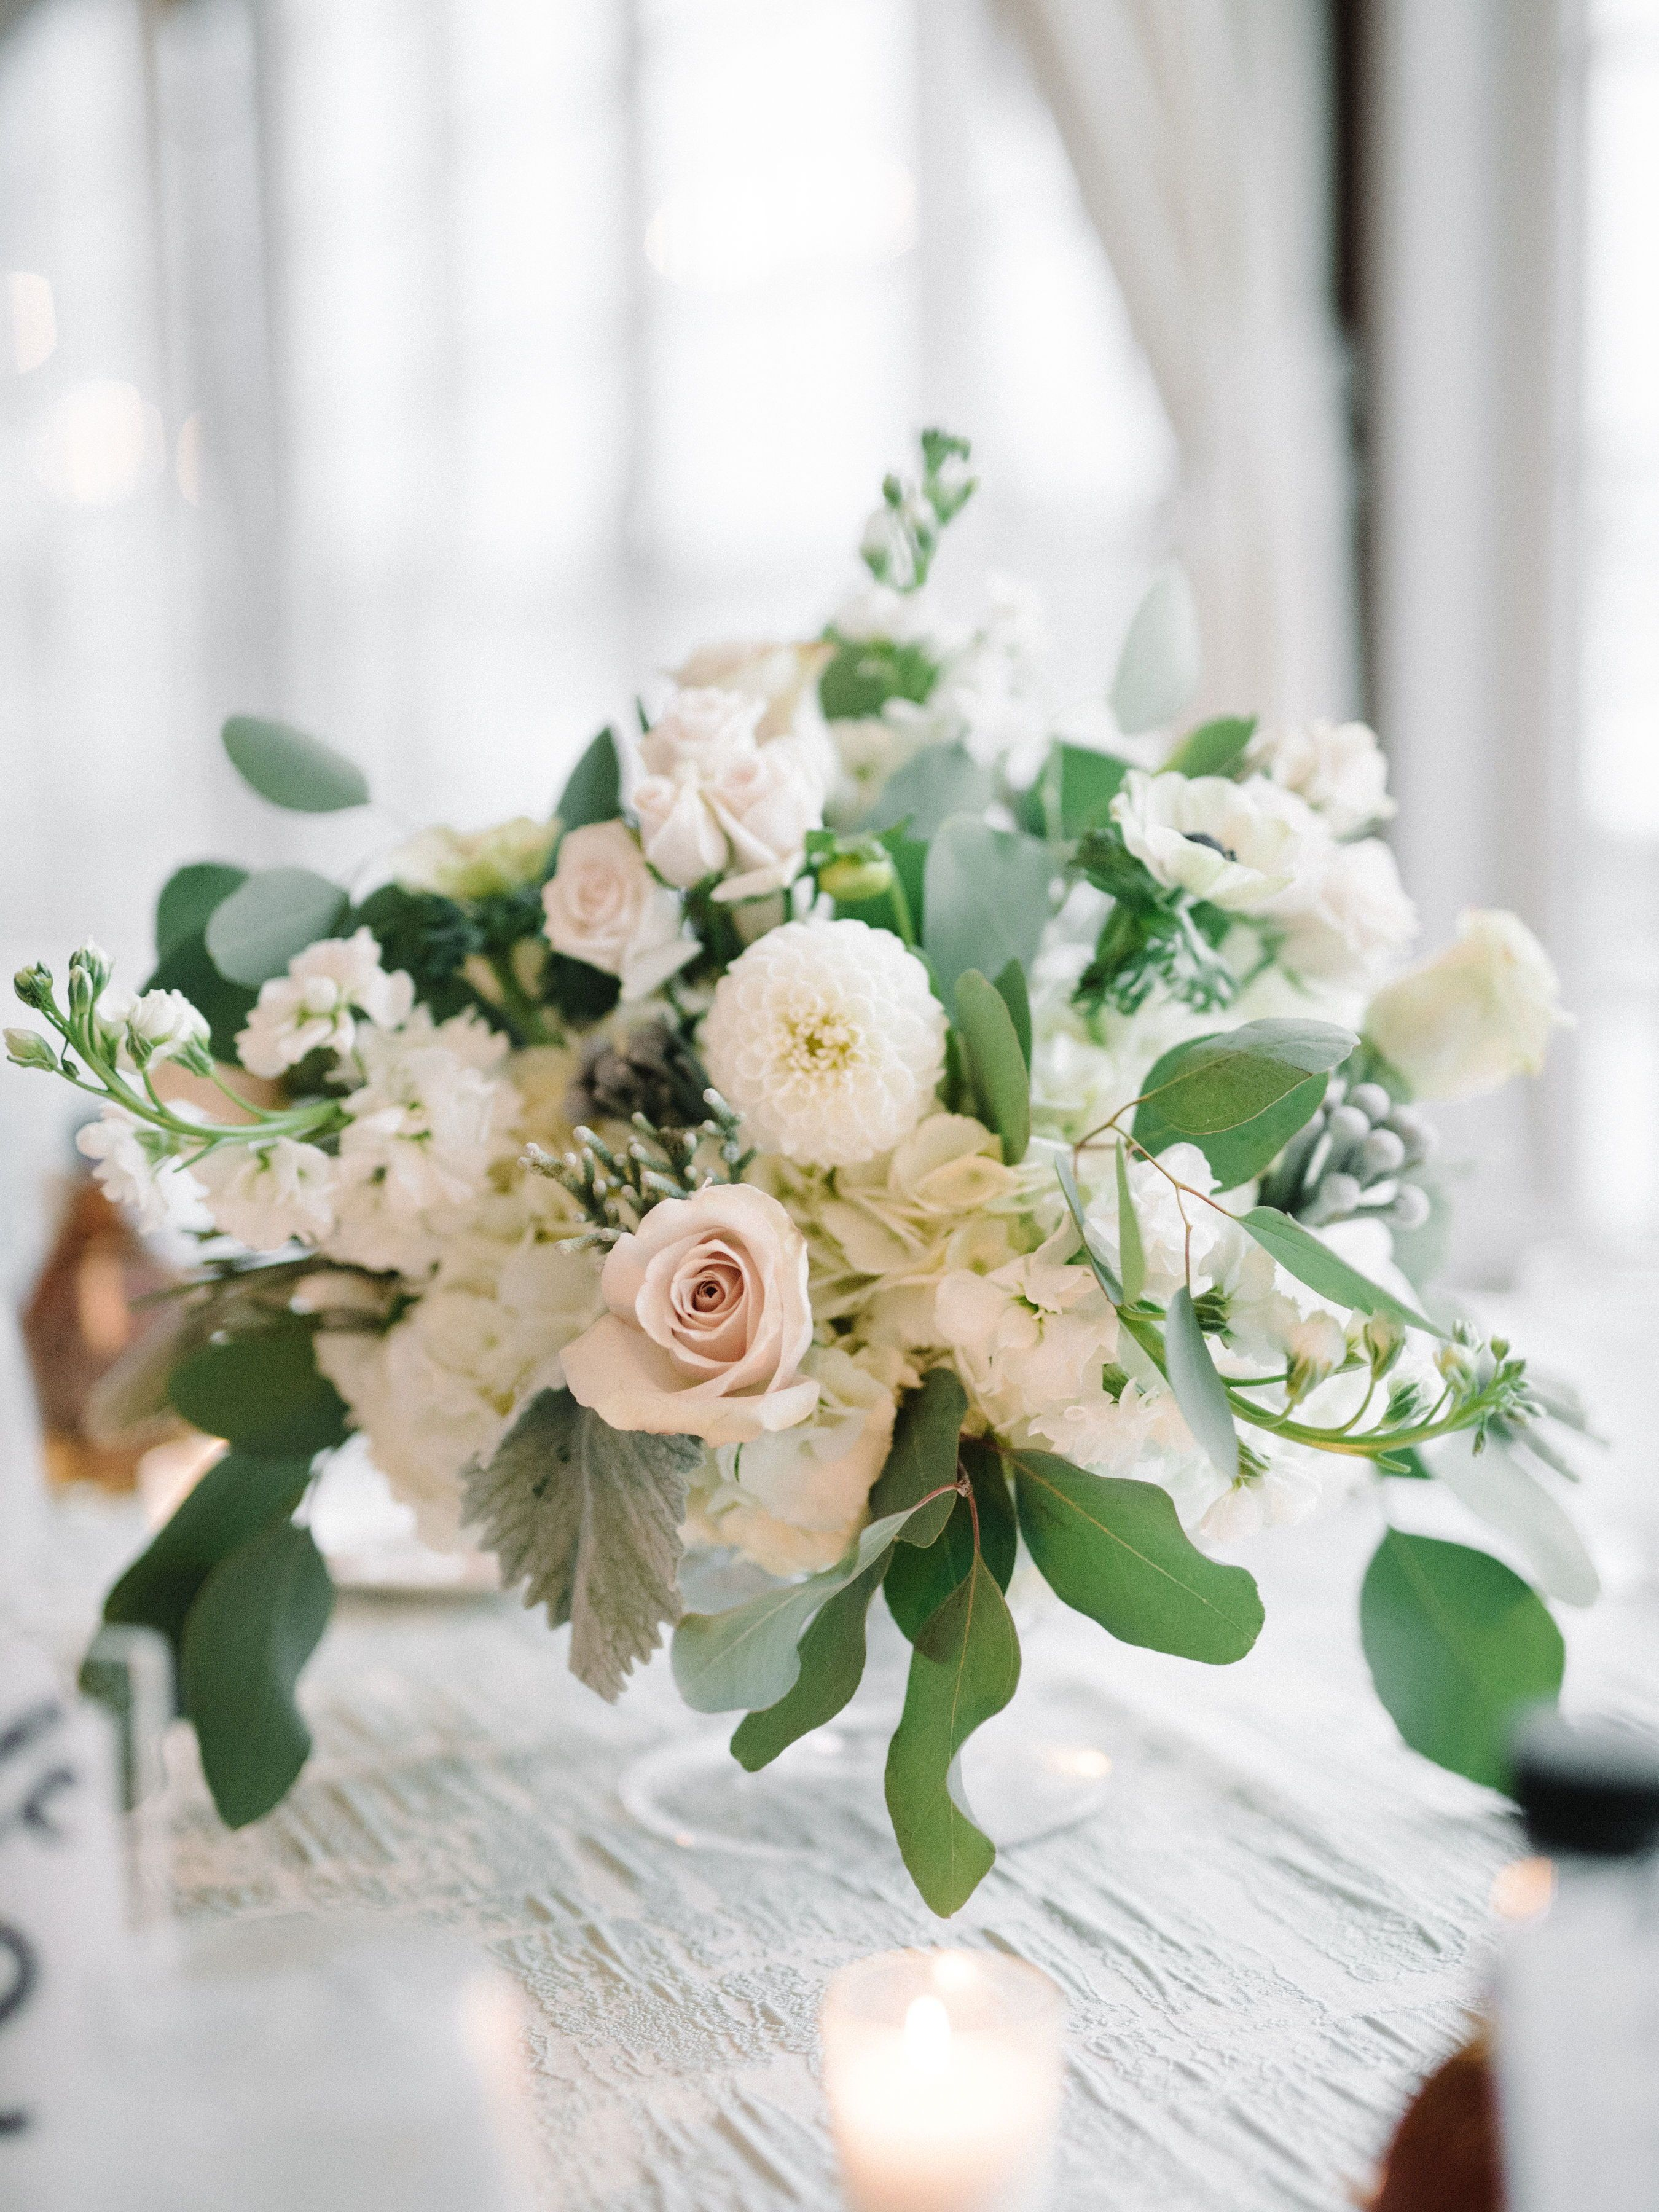 Multi White Flower Wedding Centerpiece Wedding Centerpieces